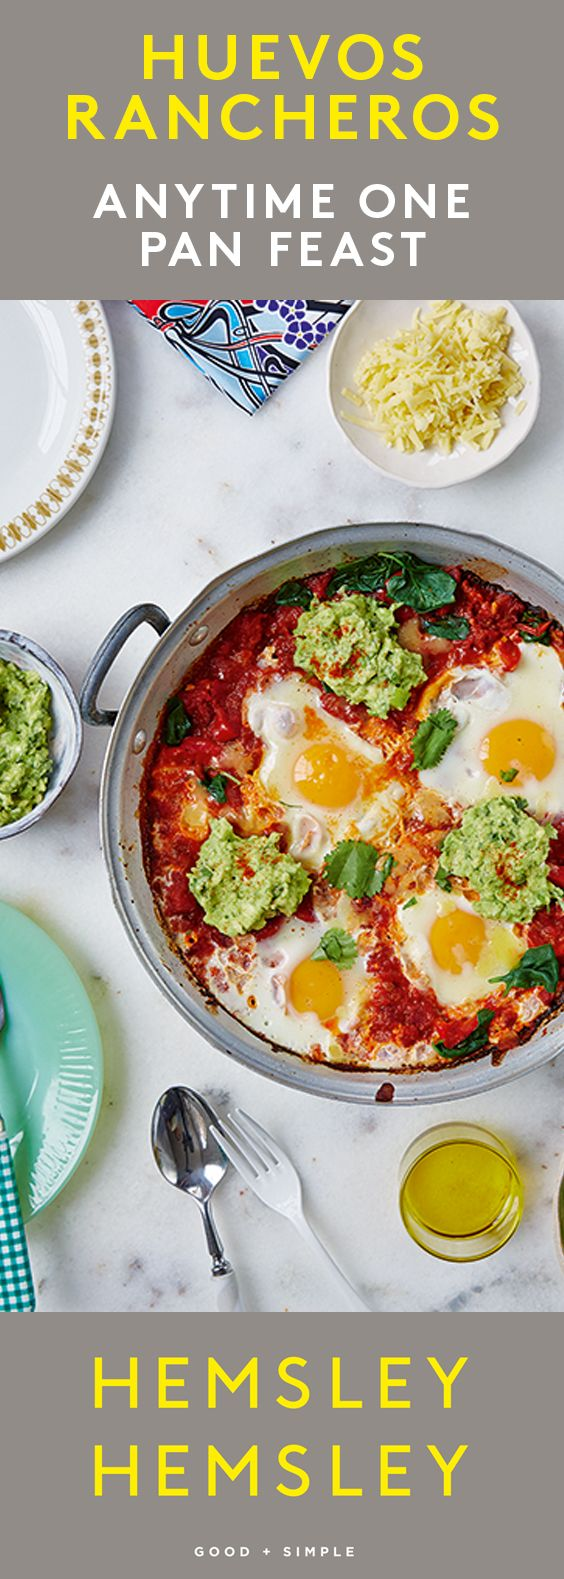 We love pasture reared eggs for breakfast, lunch and supper and this satisfying dish also makes a favourite weekend brunch. It comes together in no time at all, leaving you plenty of time to potter around, read the papers, and relax. The fiery rich red sauce with the cool and creamy smashed avocado is a delicious combo. From our bestselling second cookbook Good   Simple, and as seen in Eating Well with Hemsley   Hemsley, Mondays at 8pm on Channel 4 - starting 2016, May 9.